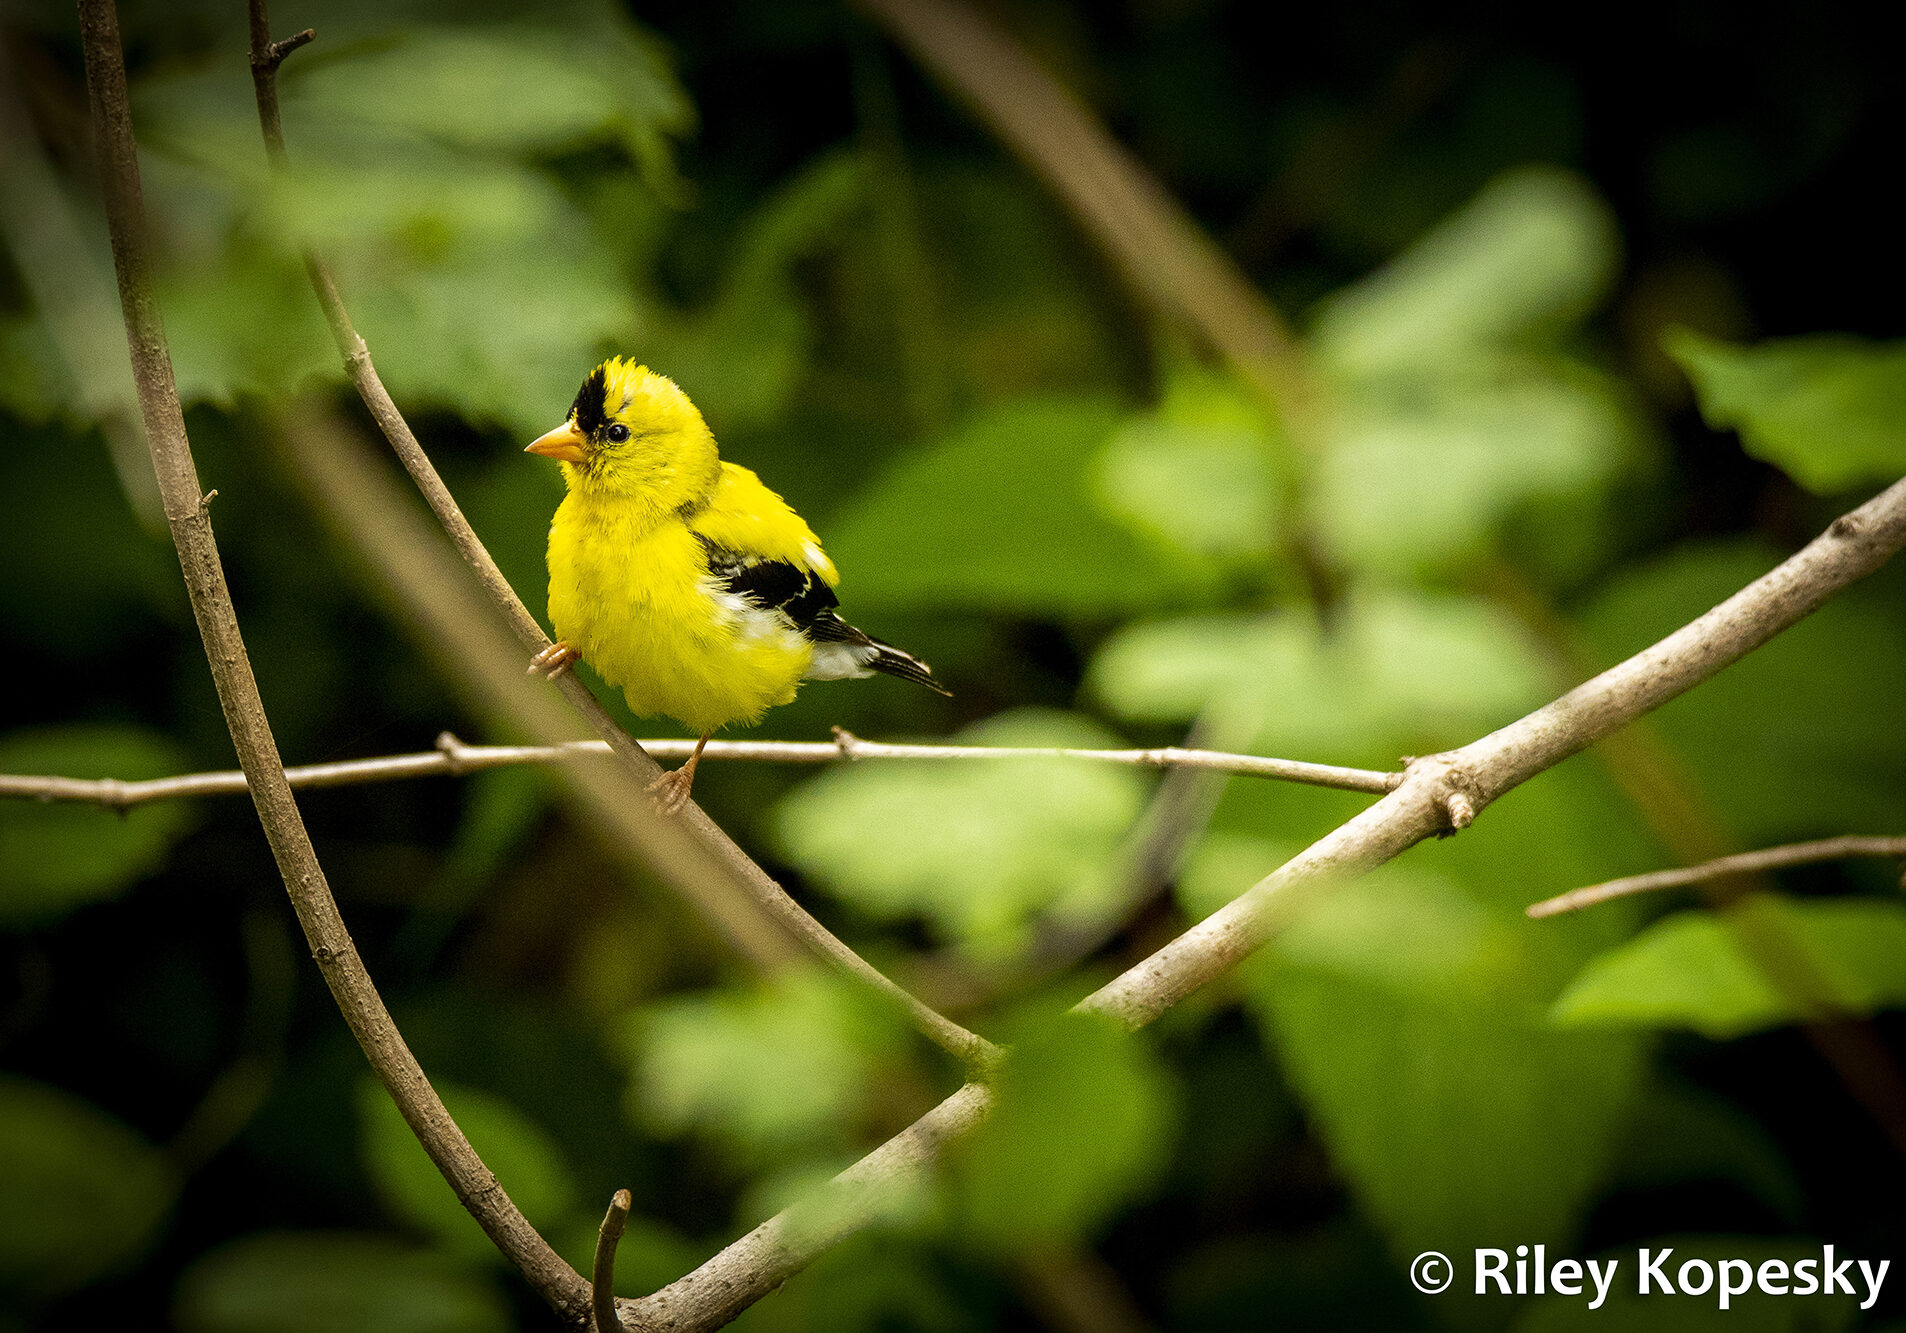 Small yellow bird sits on a twig